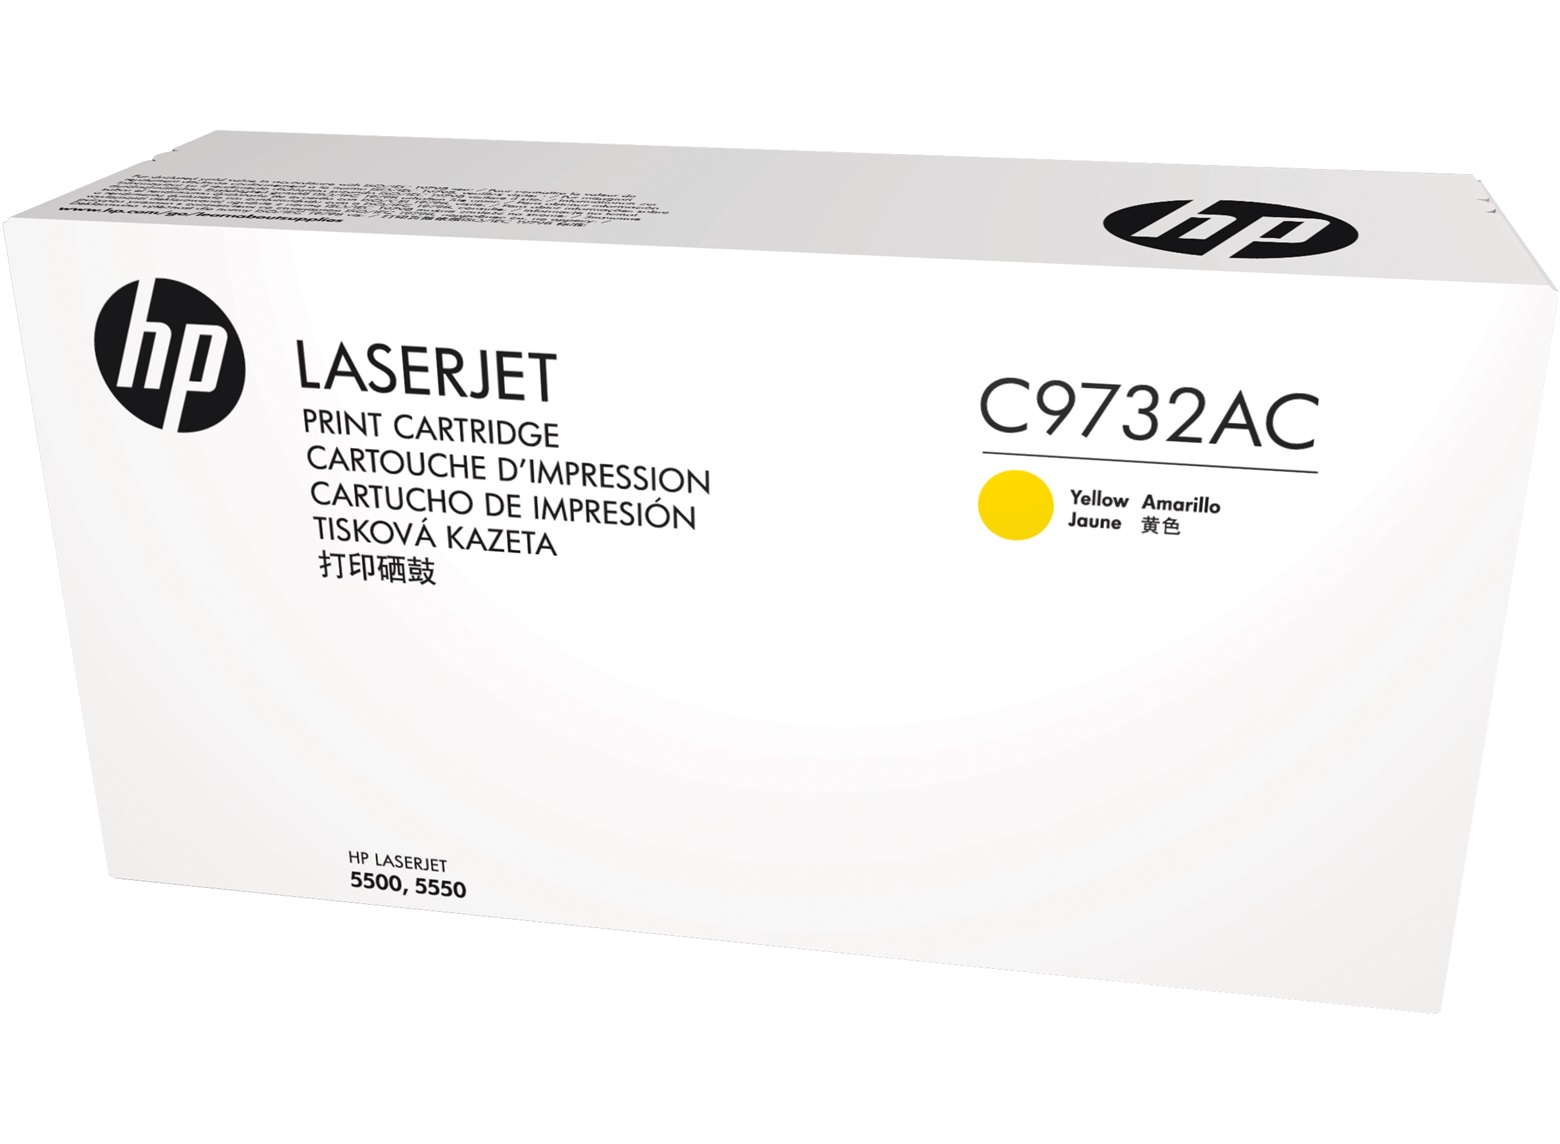 HP C9732AC Ylw Contr LJ Toner Cartridge